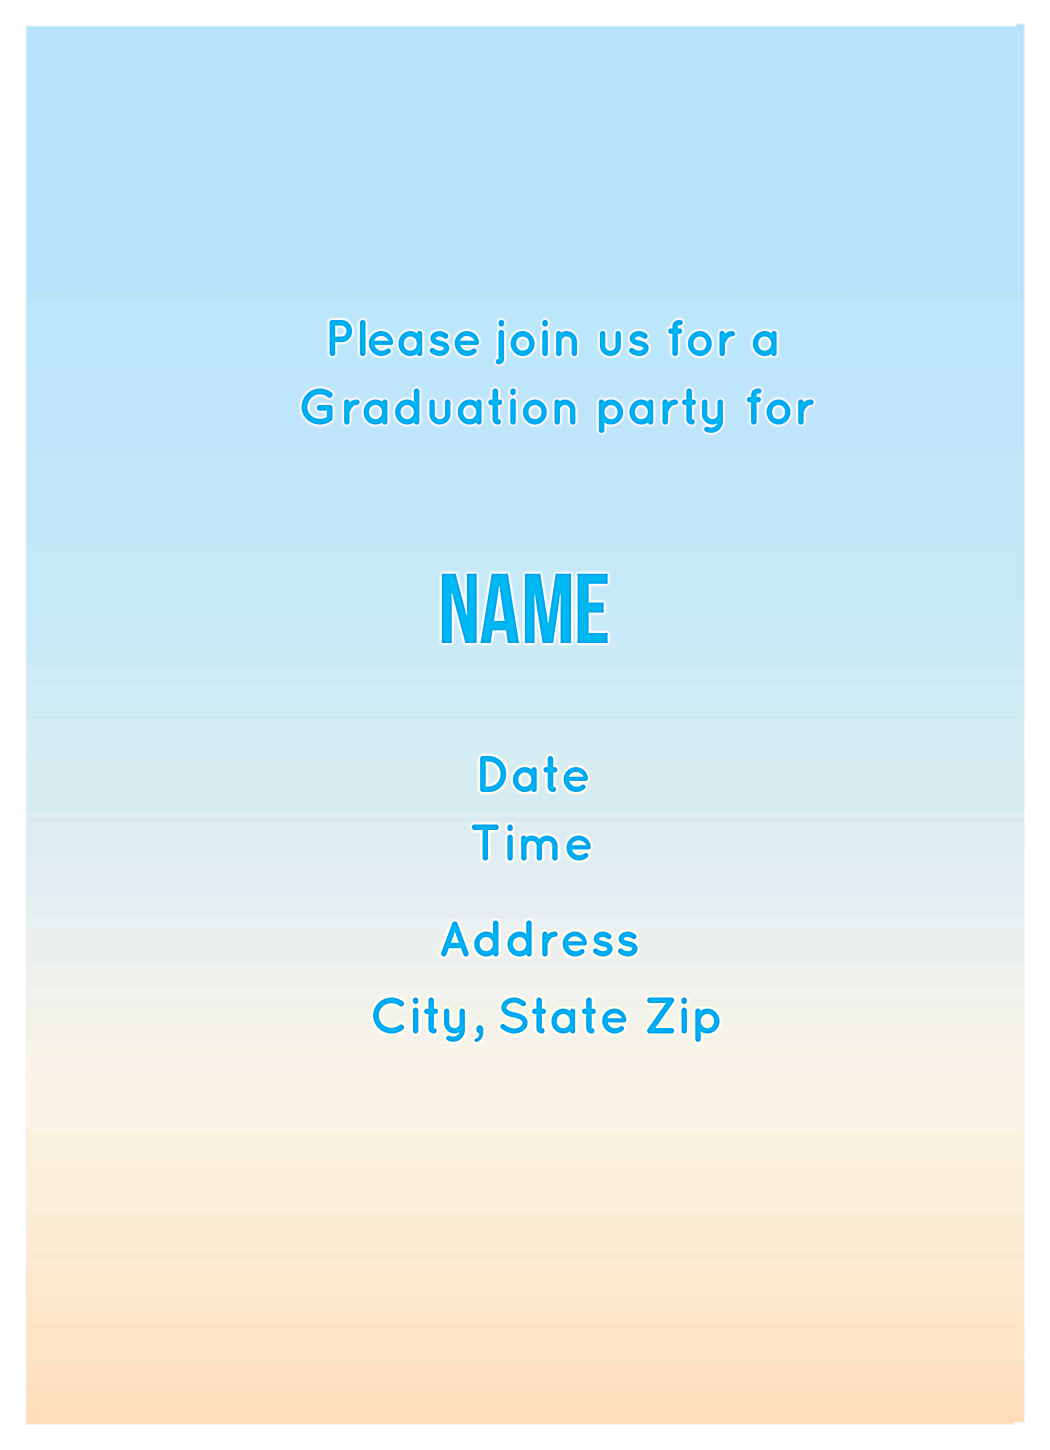 Grad Cap Party back - Invitation Cards Maker